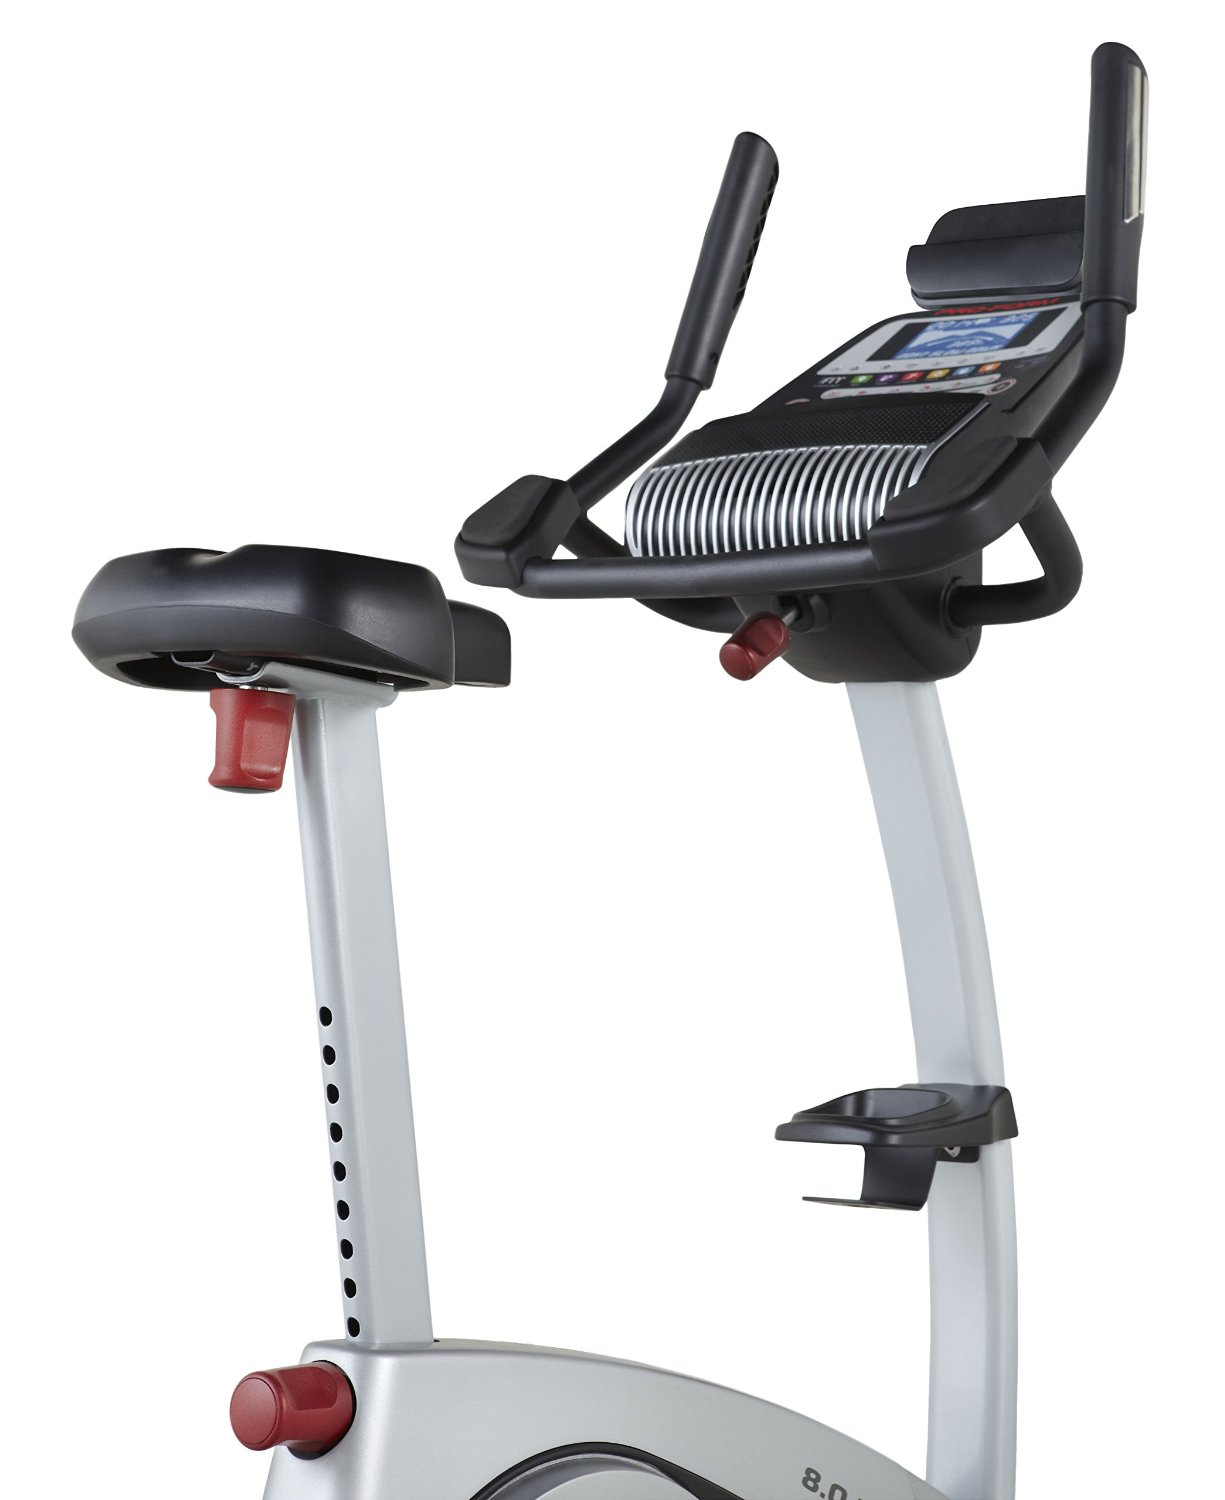 ProForm 8.0 EX Exercise Bike Review